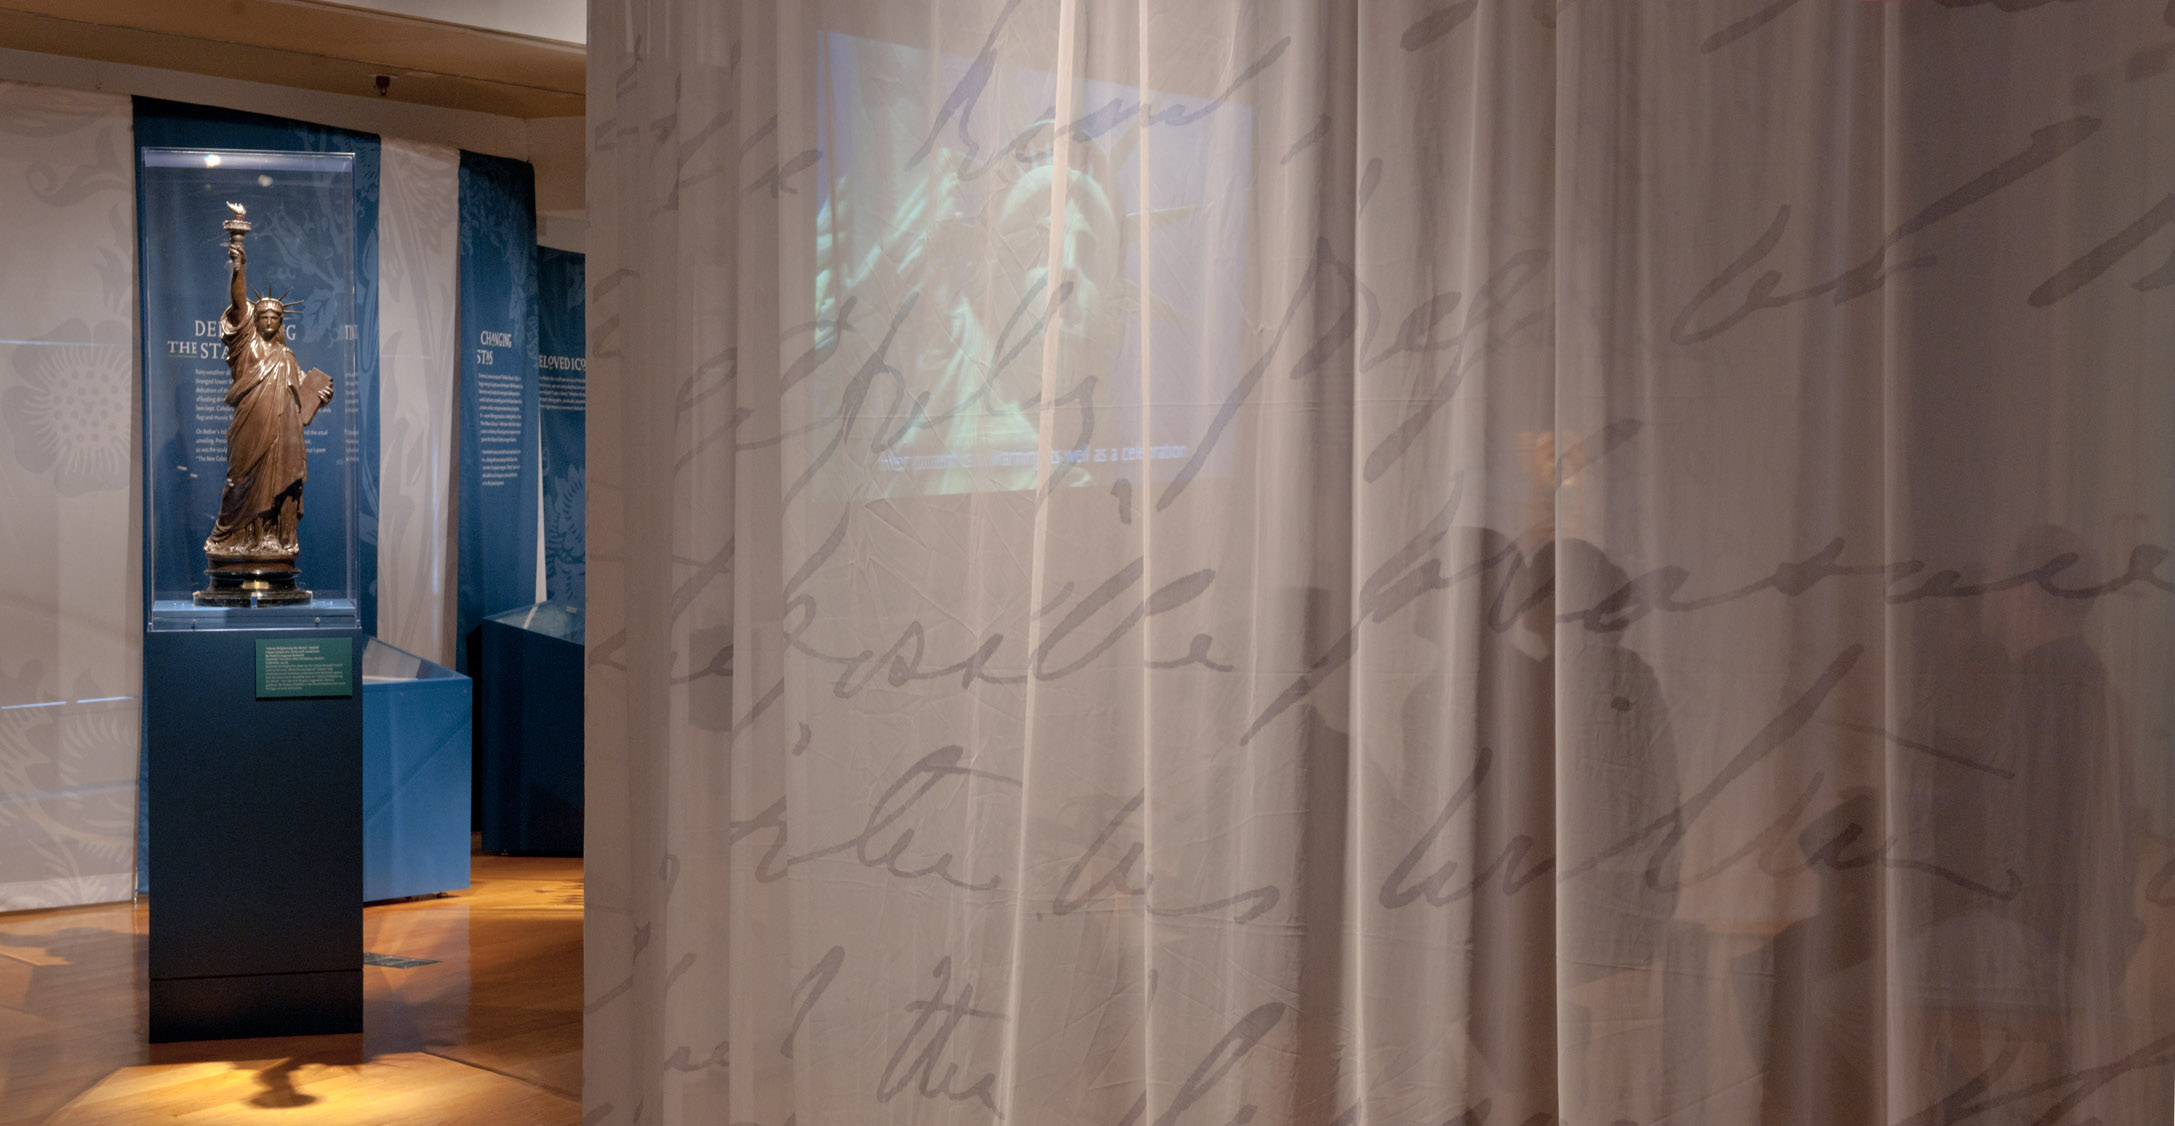 Project image 4 for Emma Lazarus: Poet of Exiles, Museum of Jewish Heritage